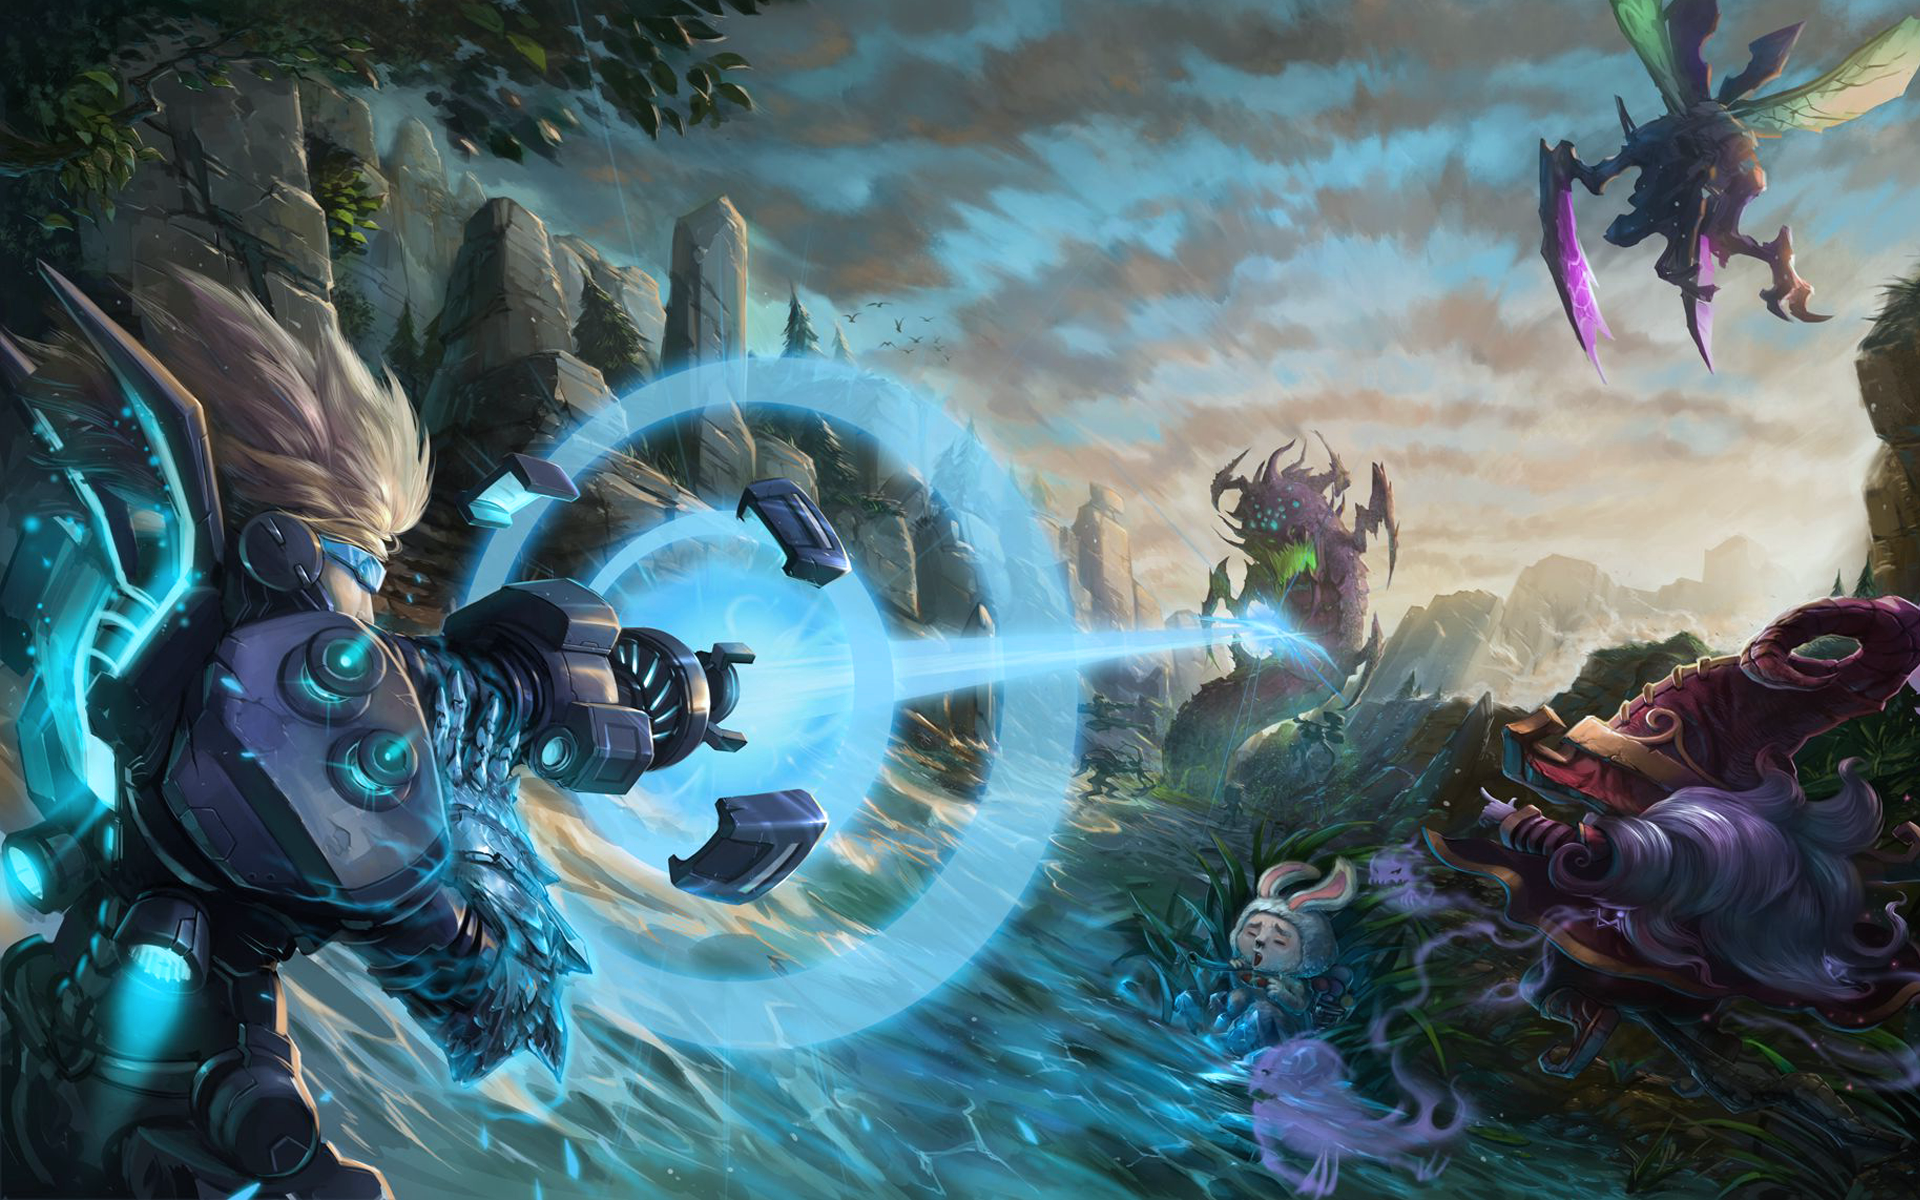 League of legends wallpaper hd